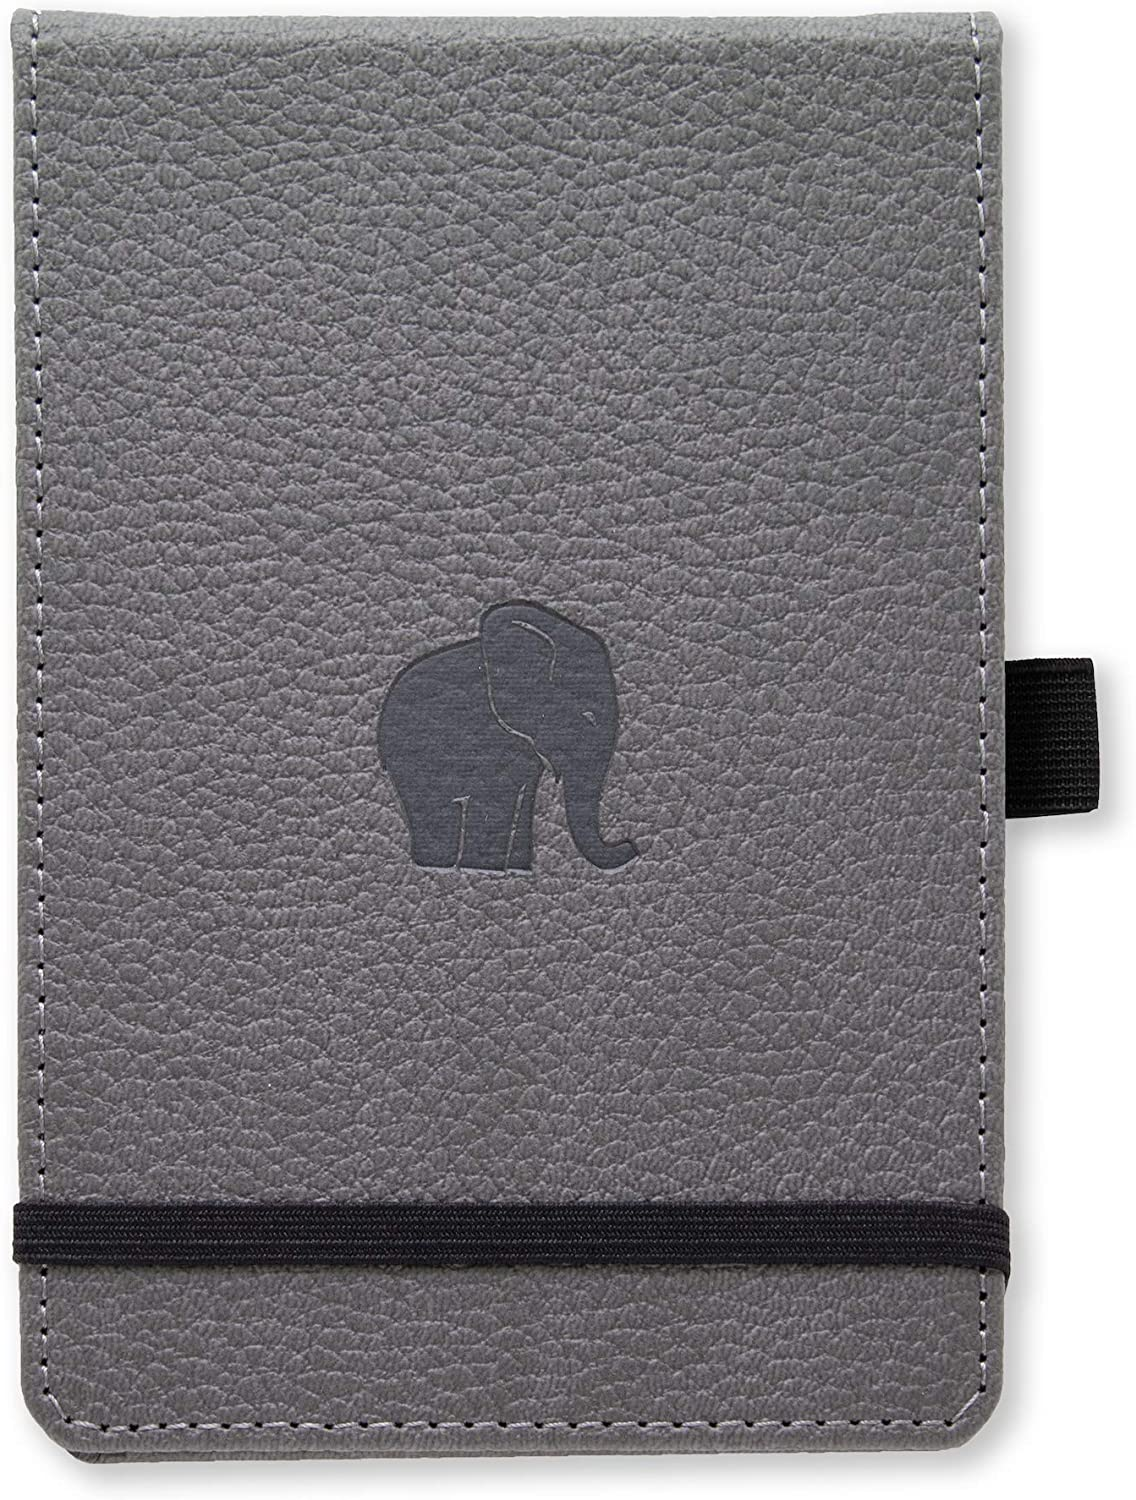 Dingbats Wildlife 192 Pages Fountain Pen Friendly Journal